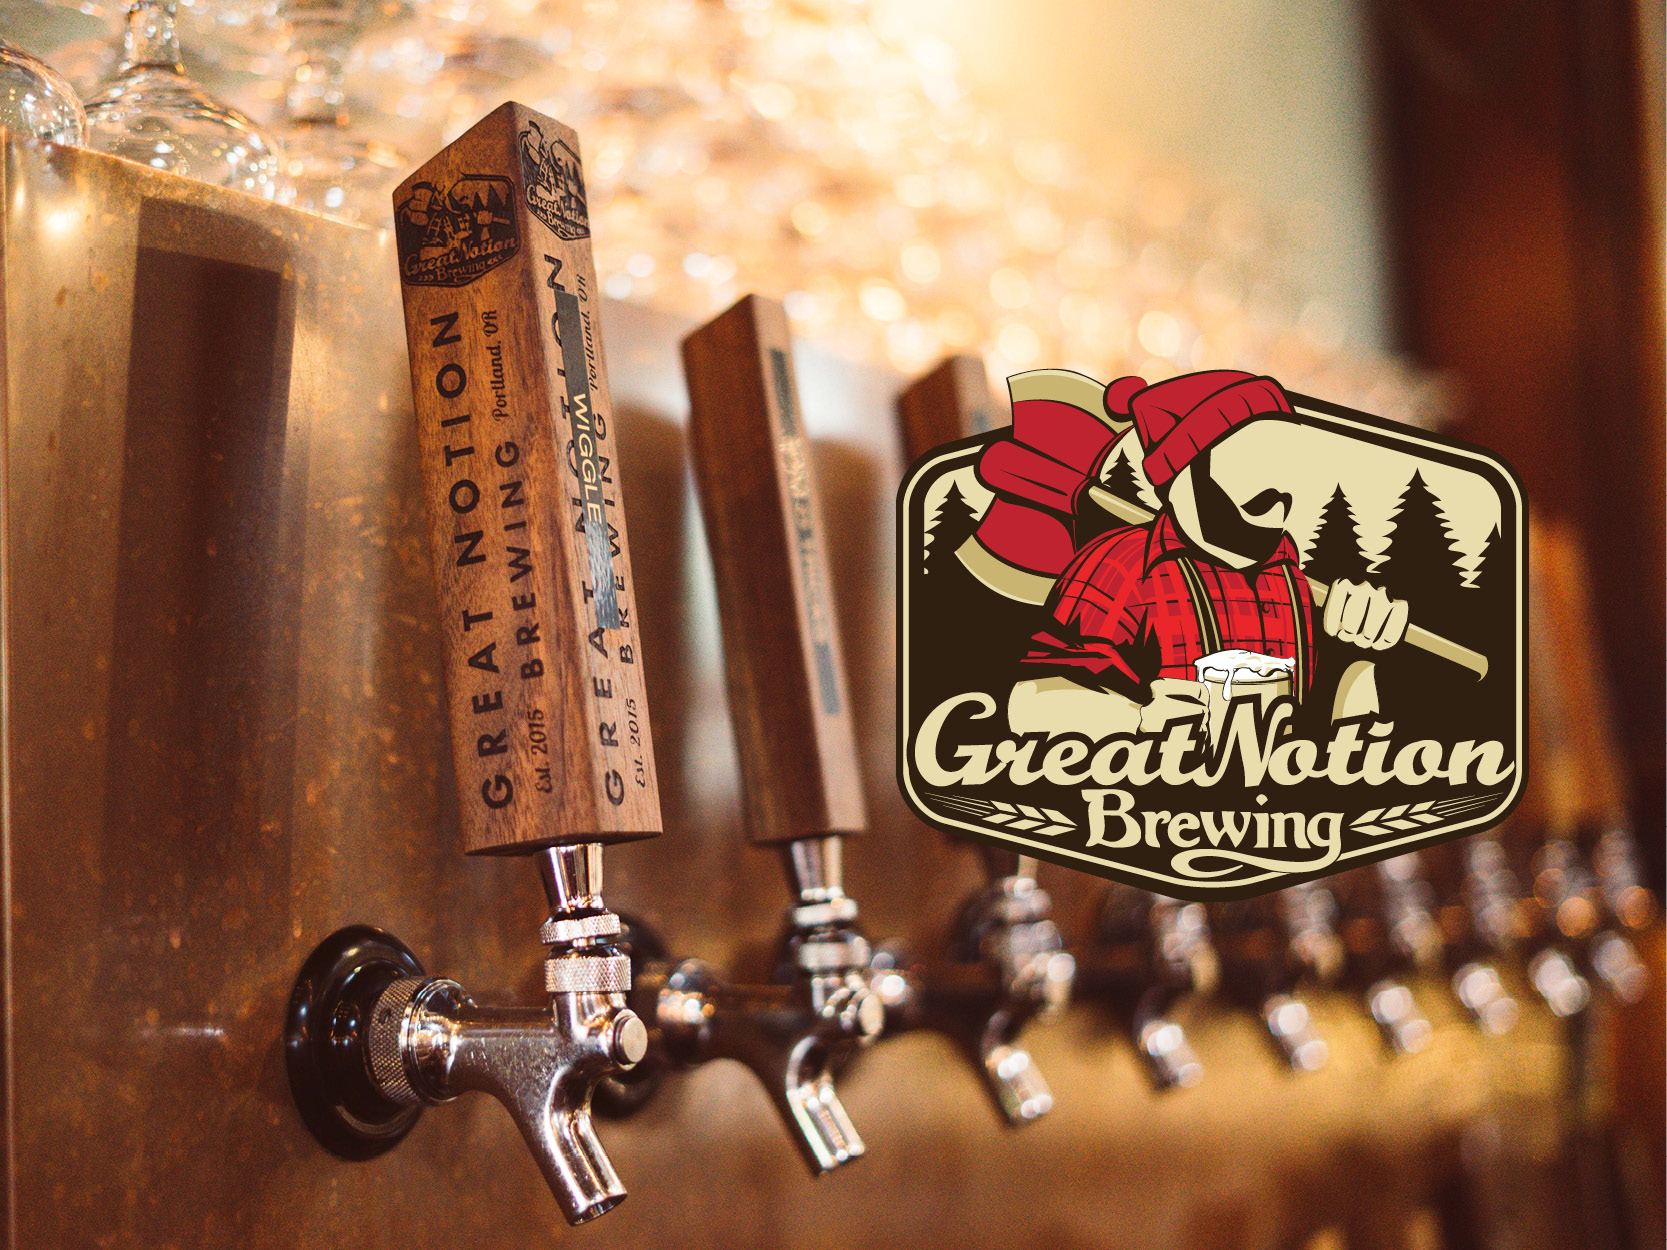 Great Notion Tap Takeover